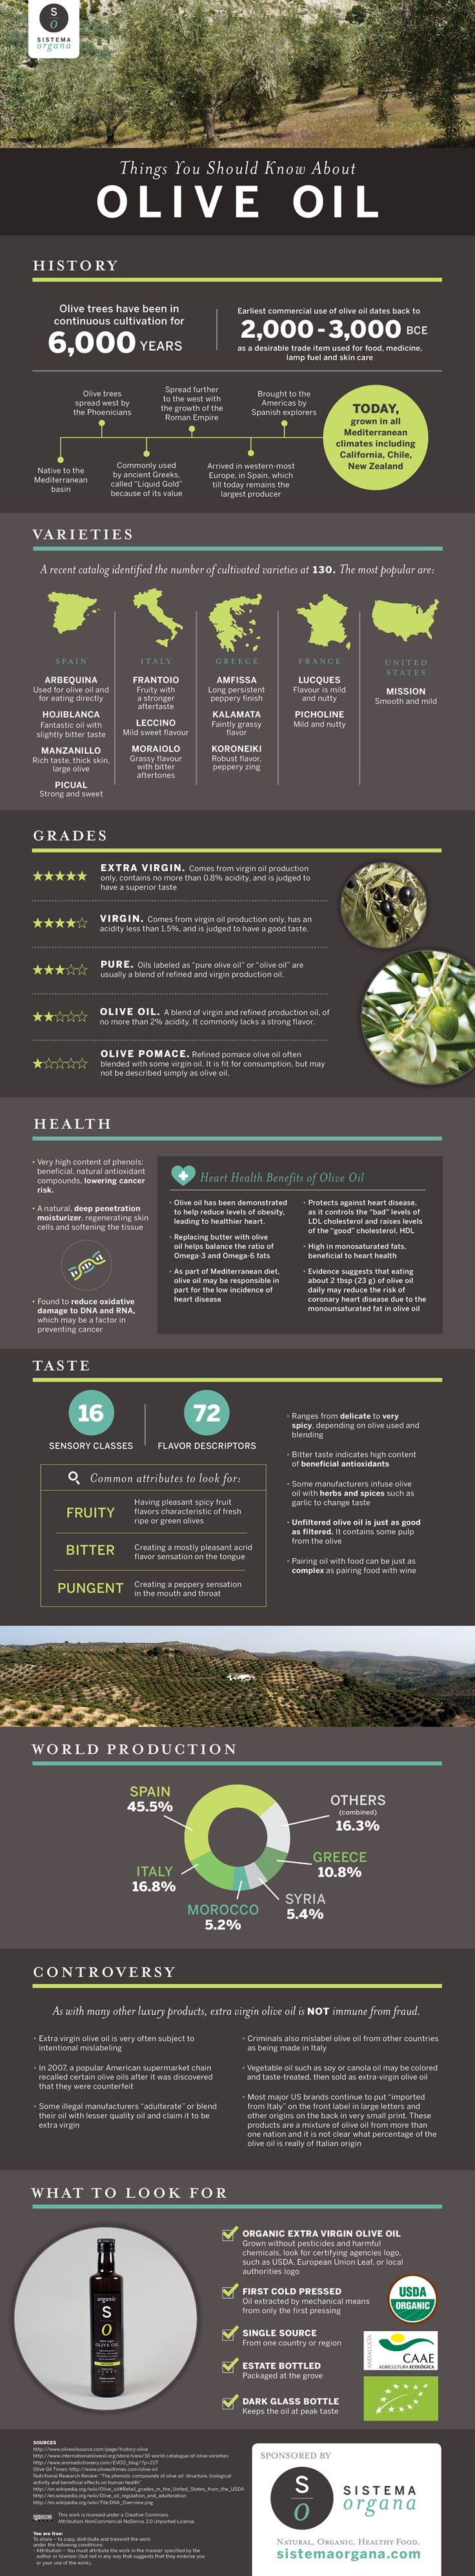 Things You Should Know About Olive Oil #infographic